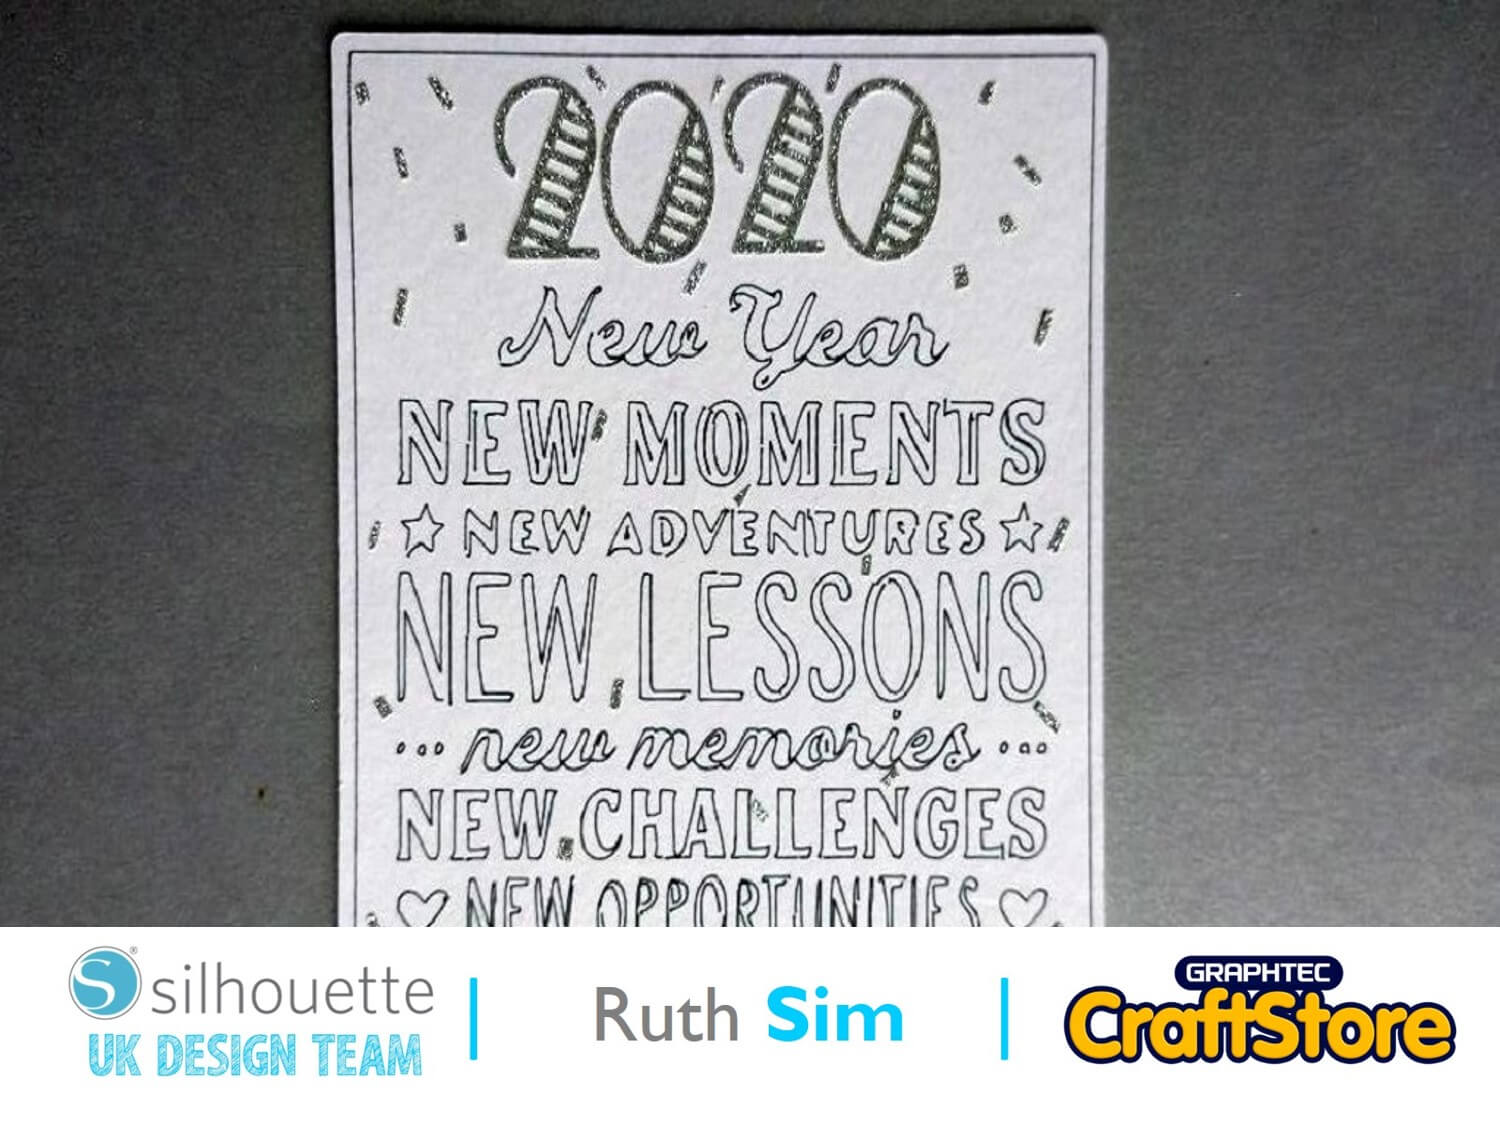 Making New Year's Resolutions | Ruth Sim | Silhouette UK Blog